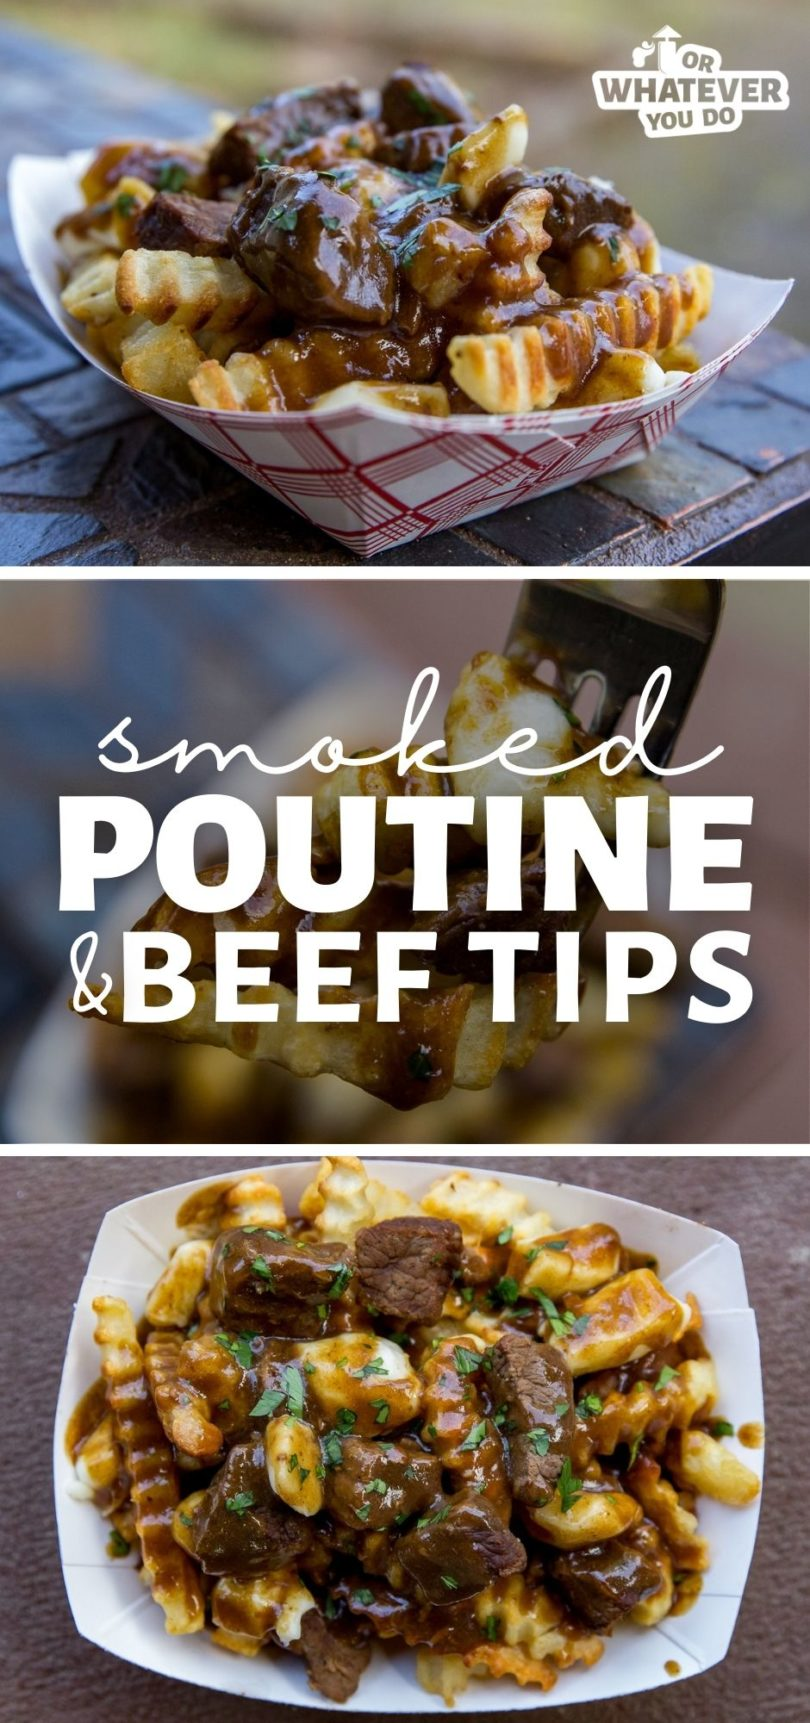 Smoked Poutine and Beef Tips